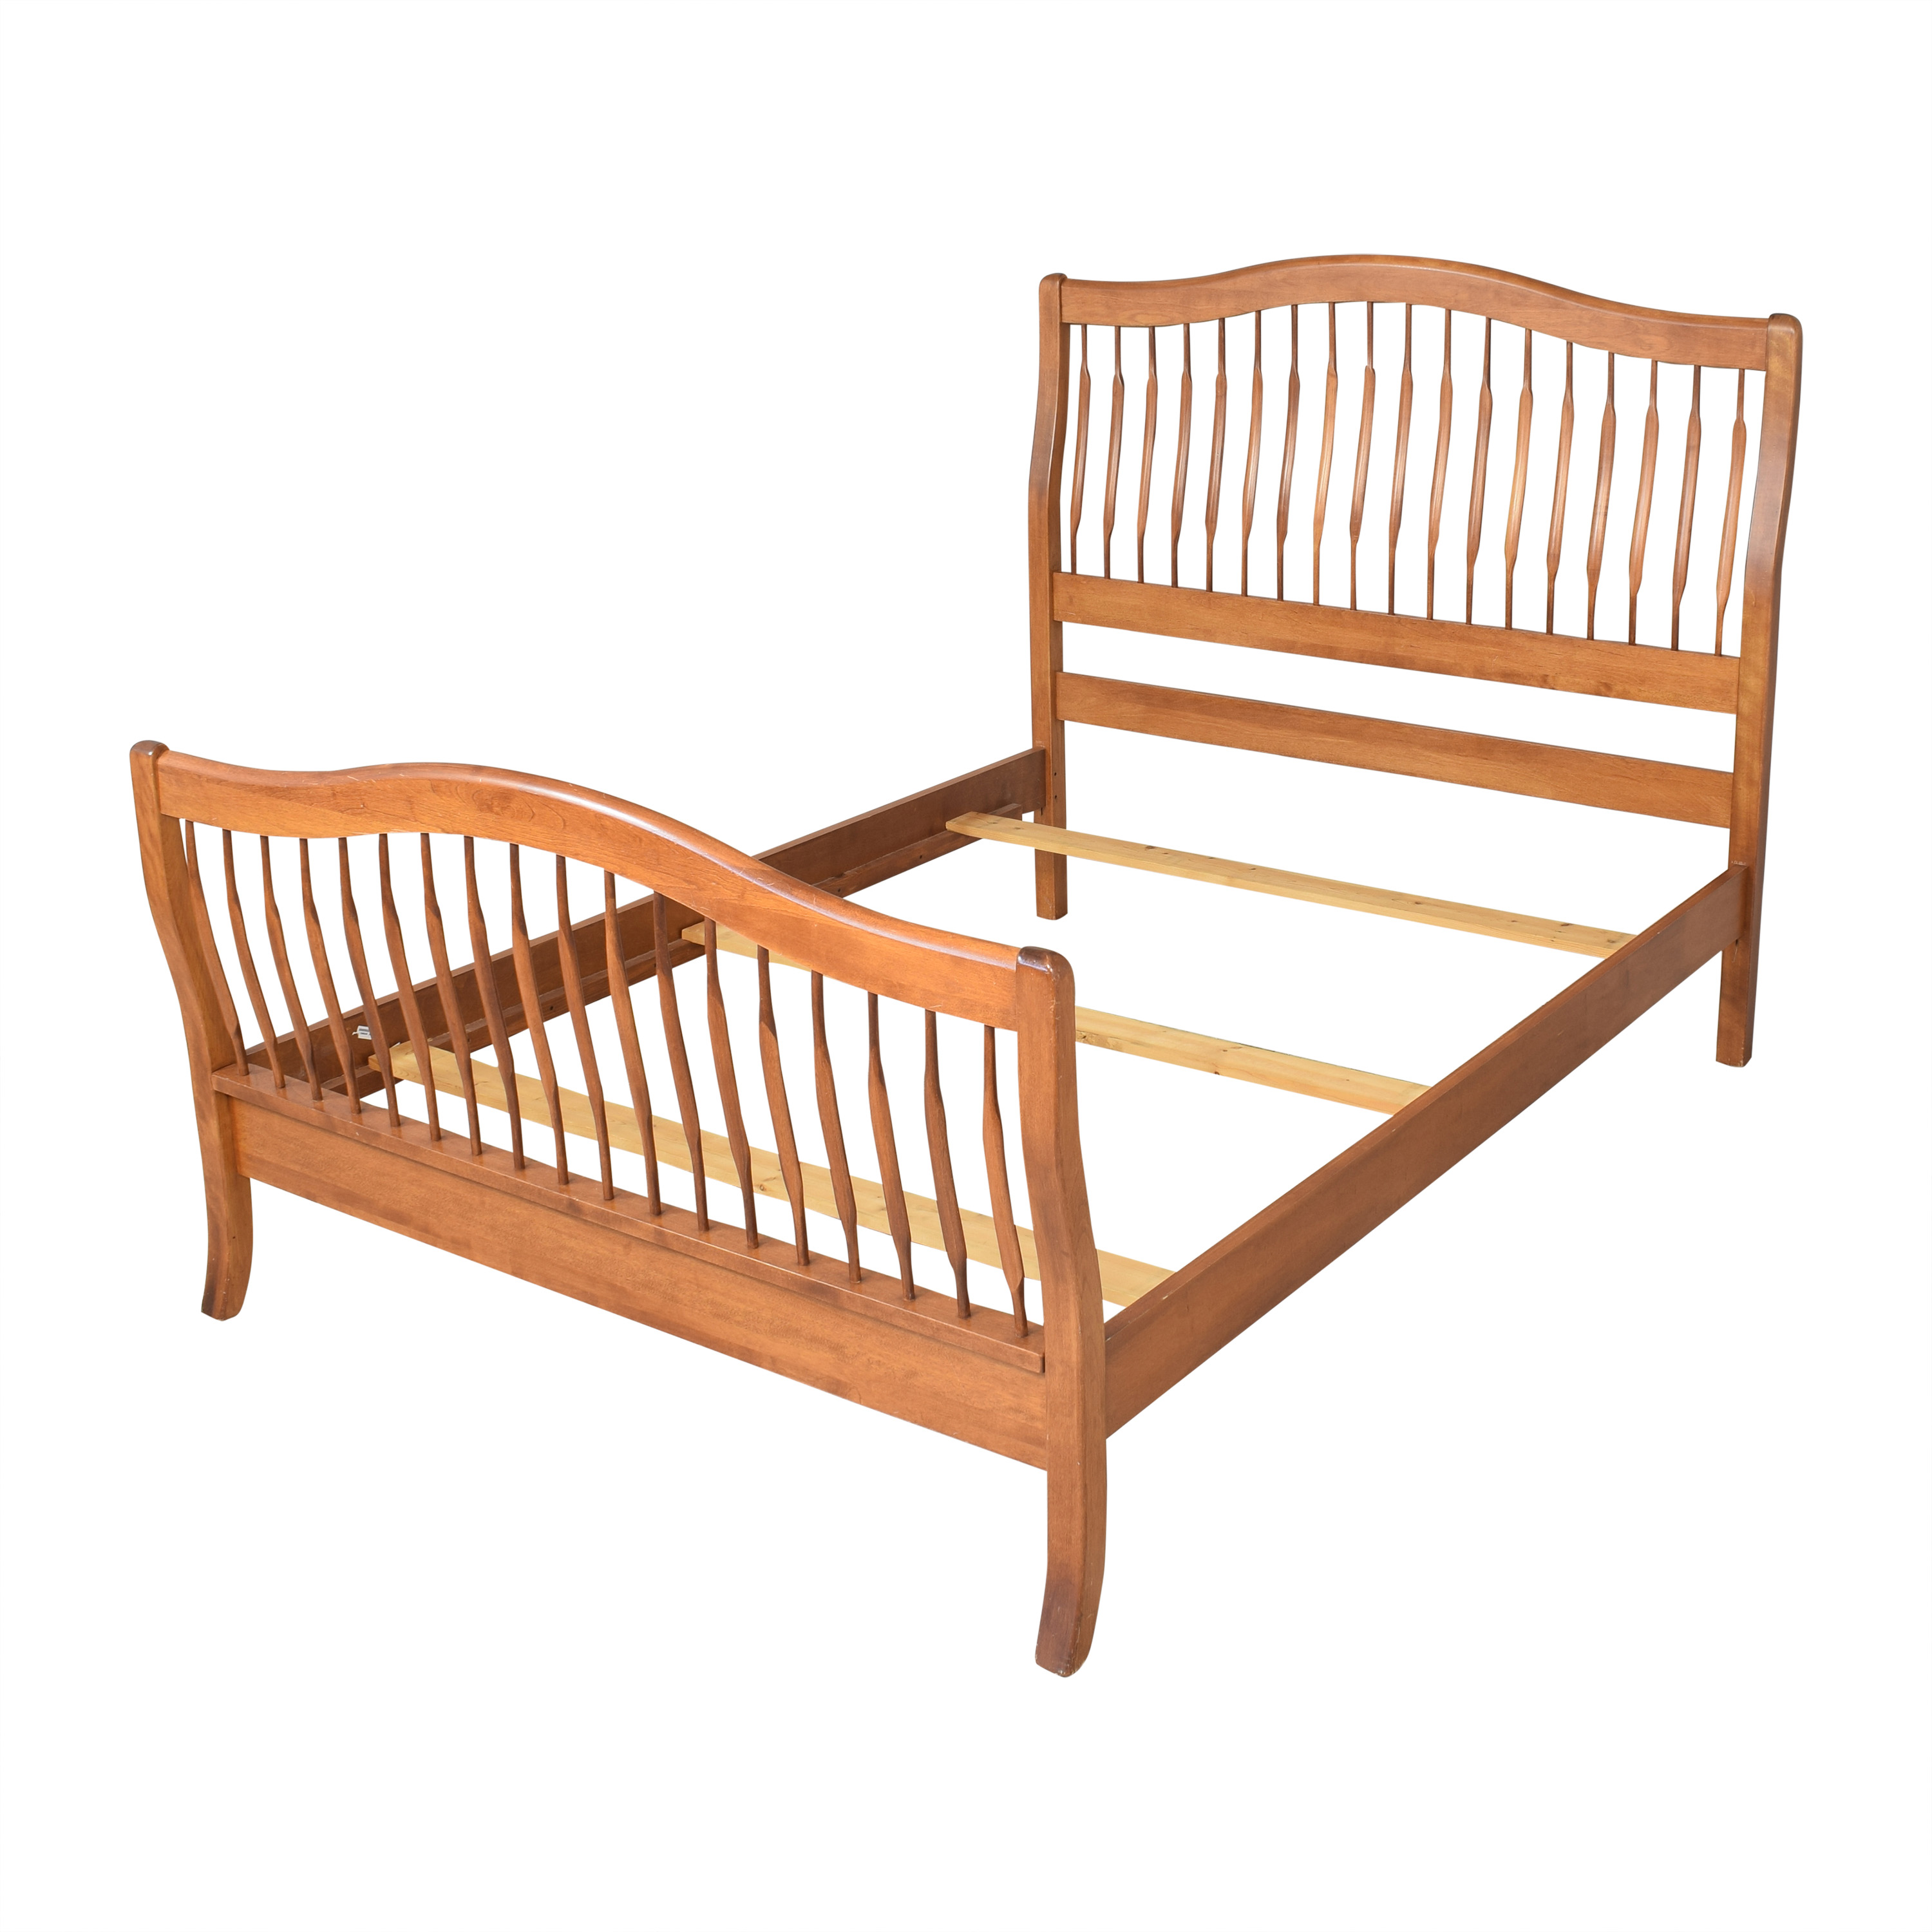 Nichols & Stone Queen Sleigh Bed / Beds